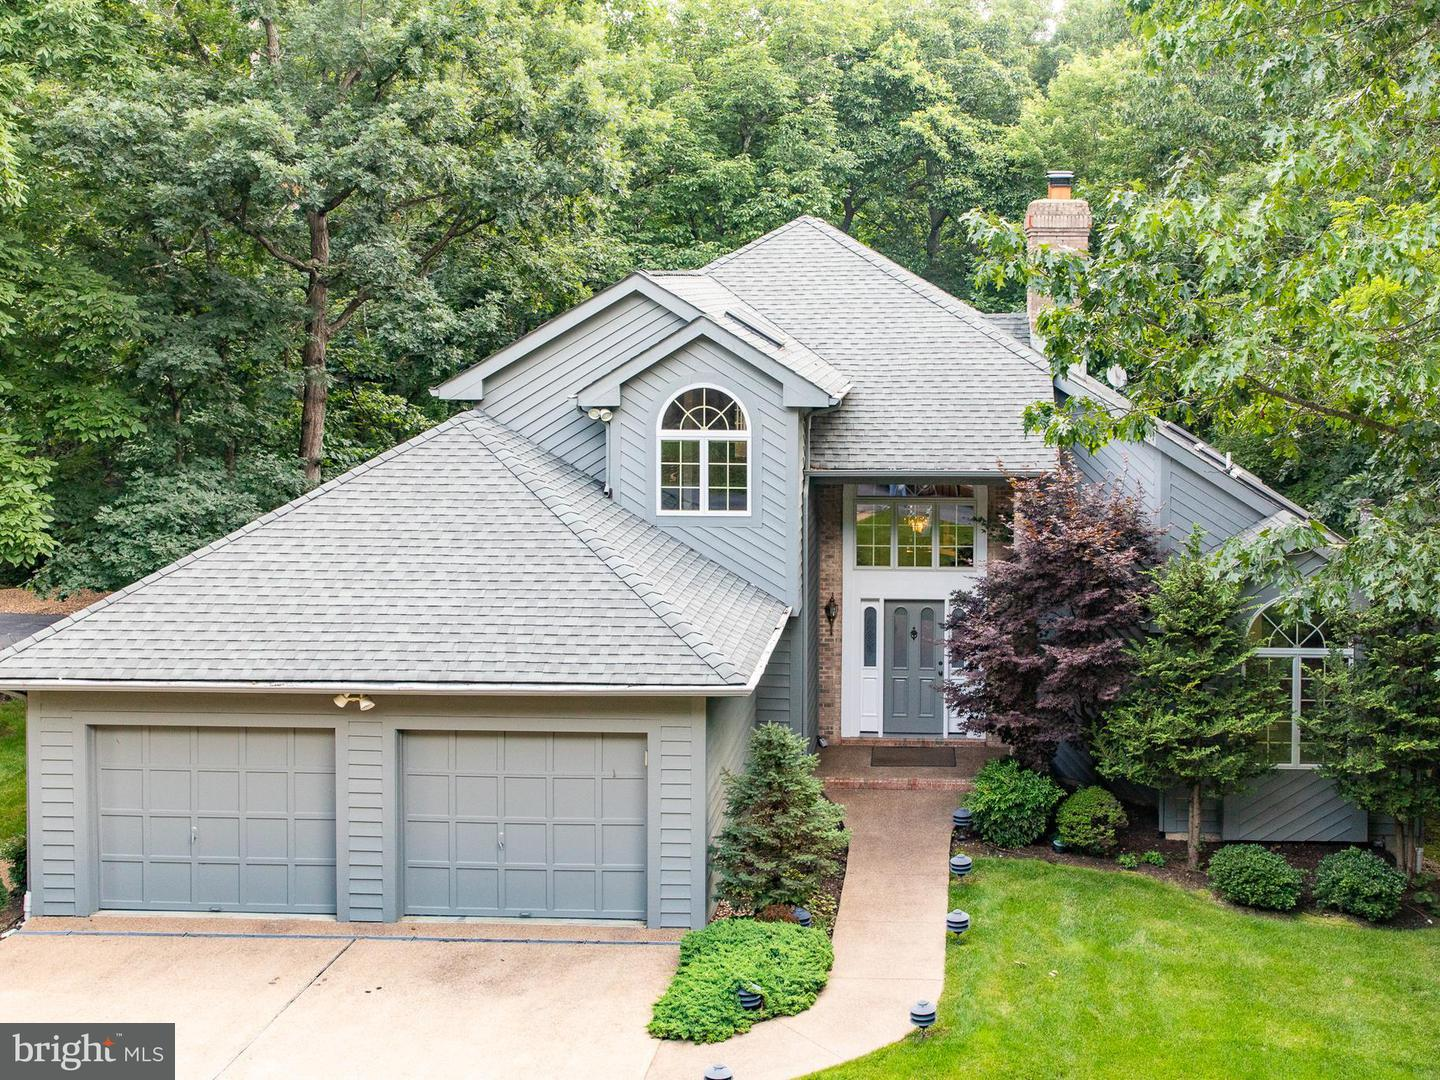 Single Family for Sale at 2484 Mountain Dr McGaheysville, Virginia 22840 United States